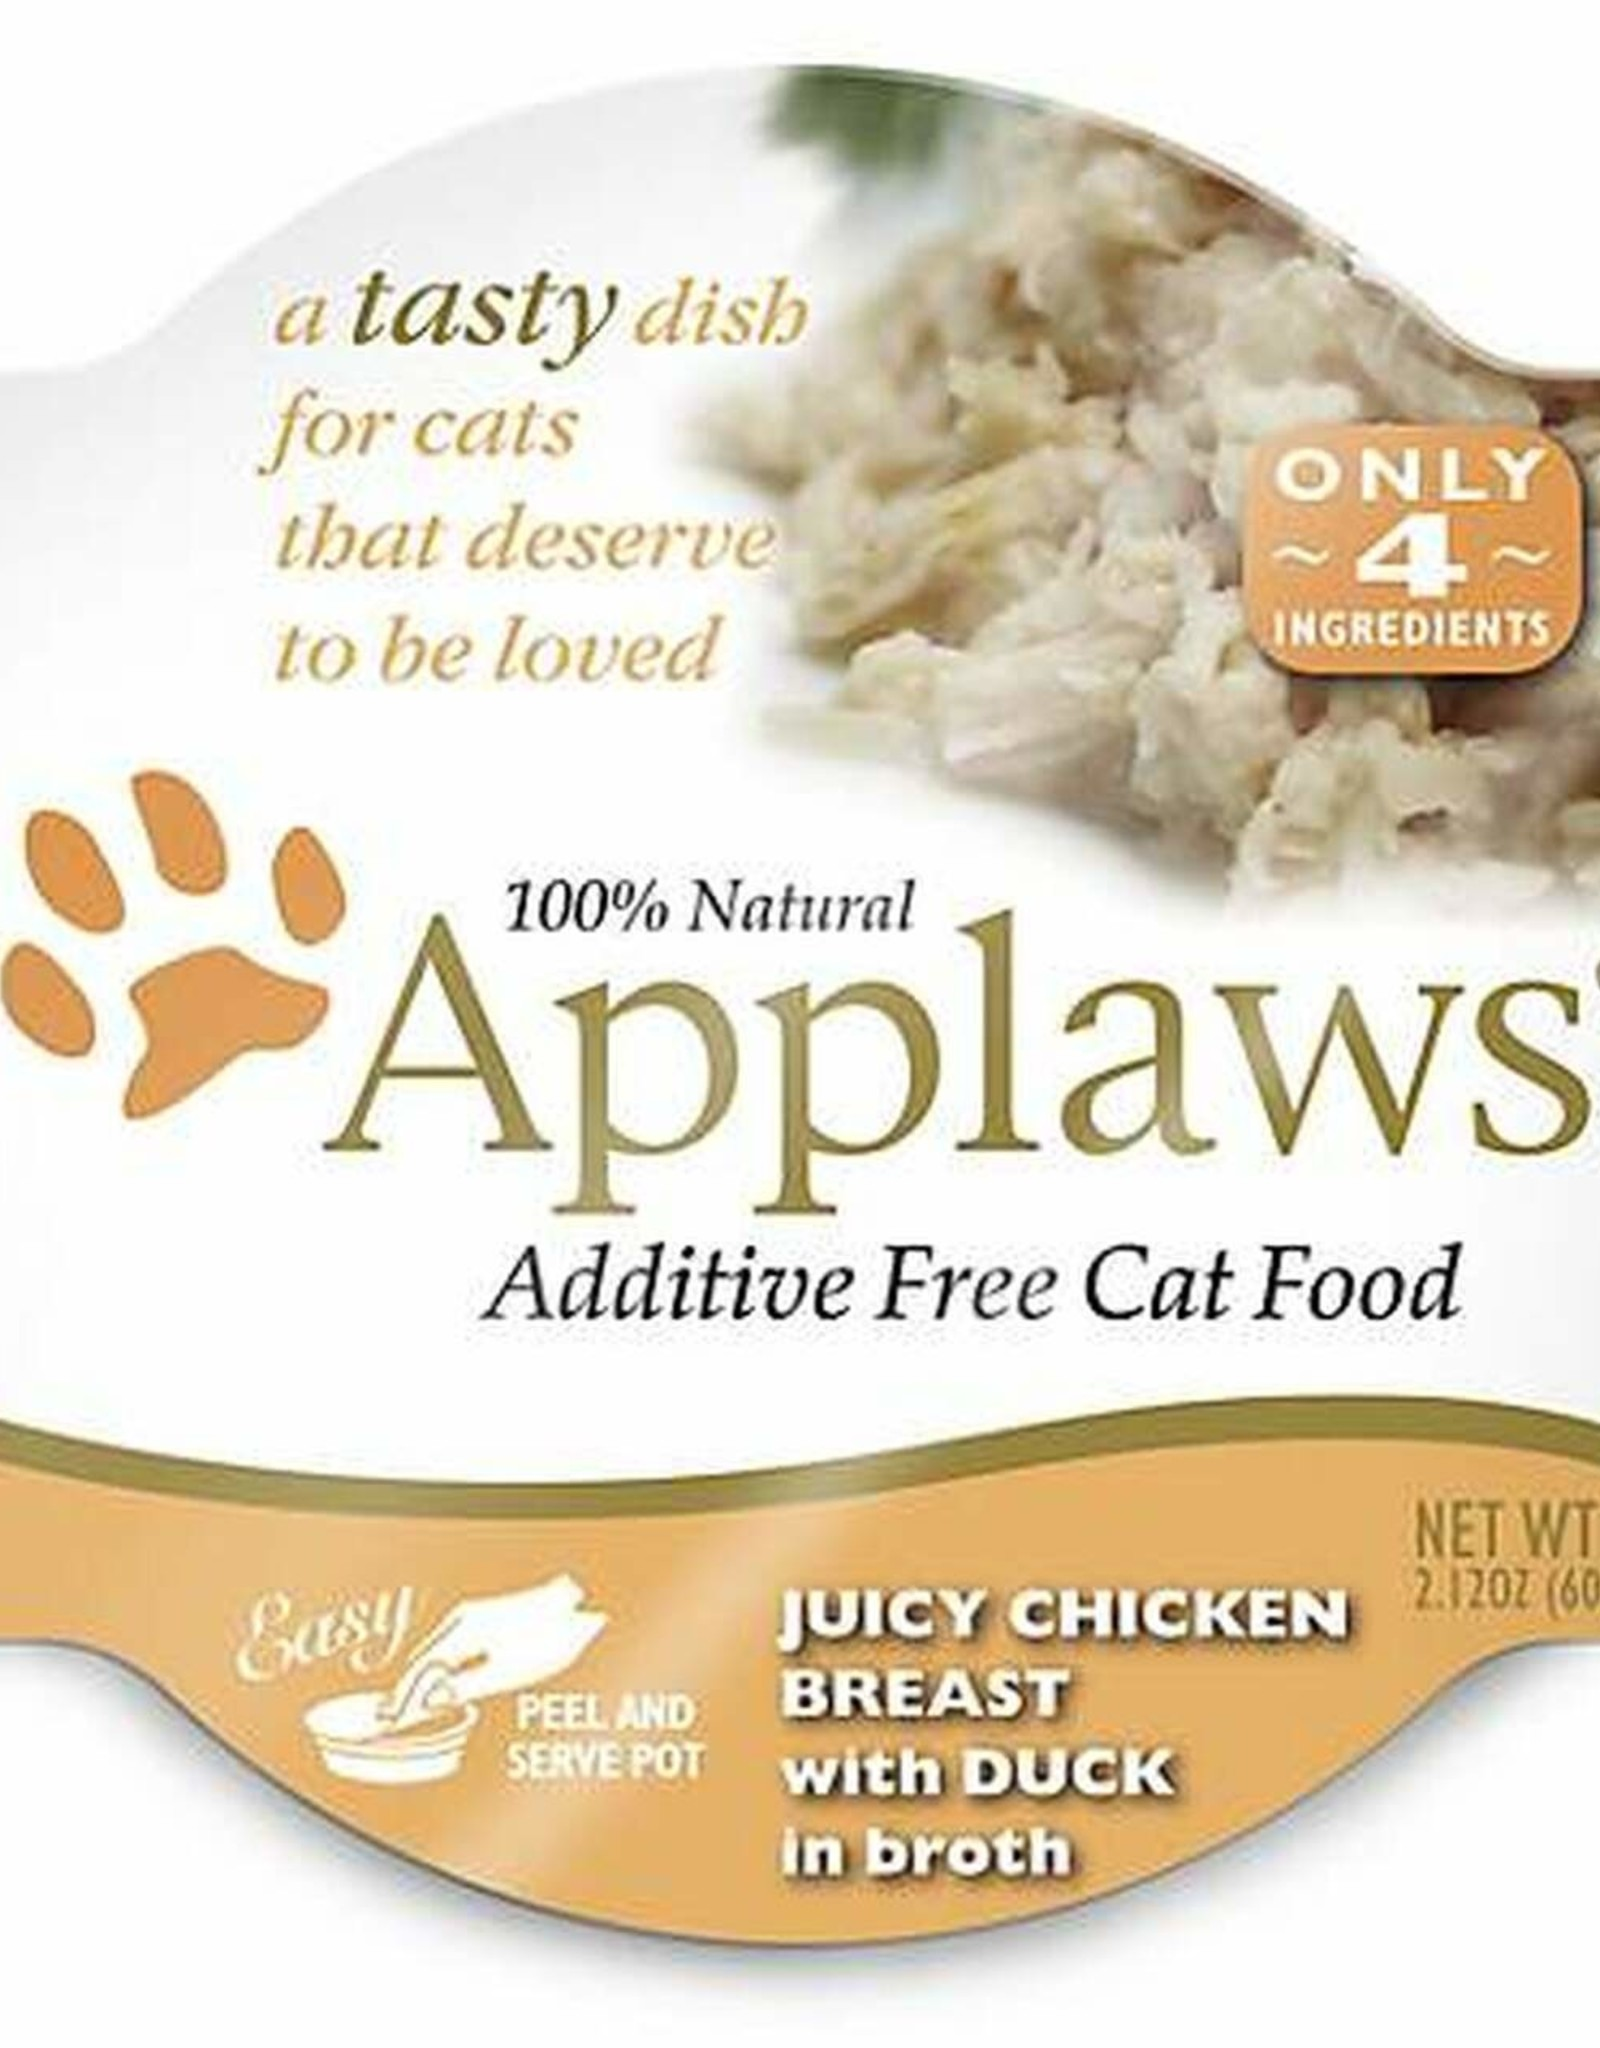 Applaws Applaws - Juicy chicken breast with duck